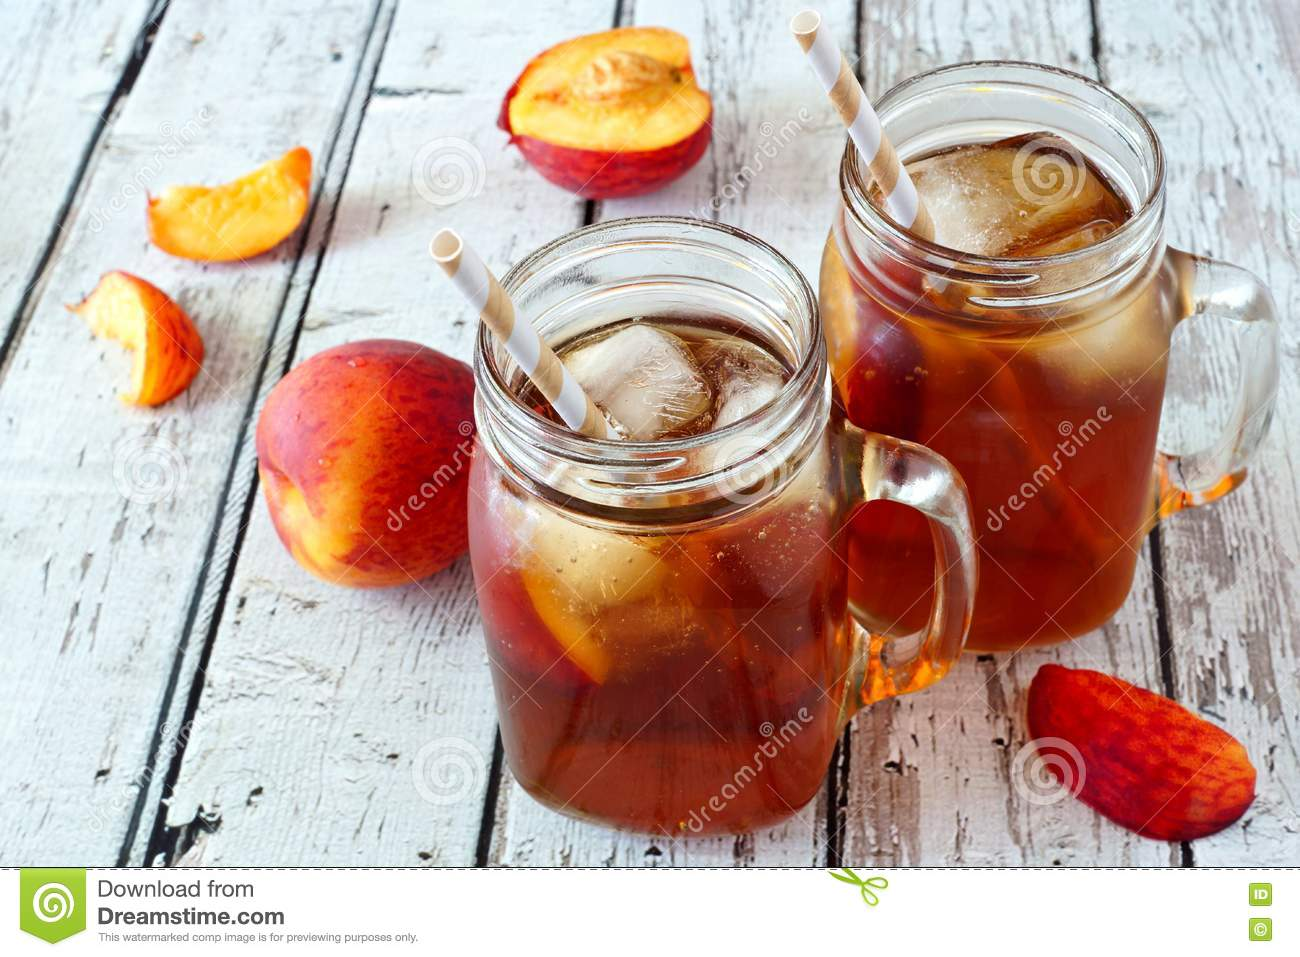 how to make homemade peach ice tea